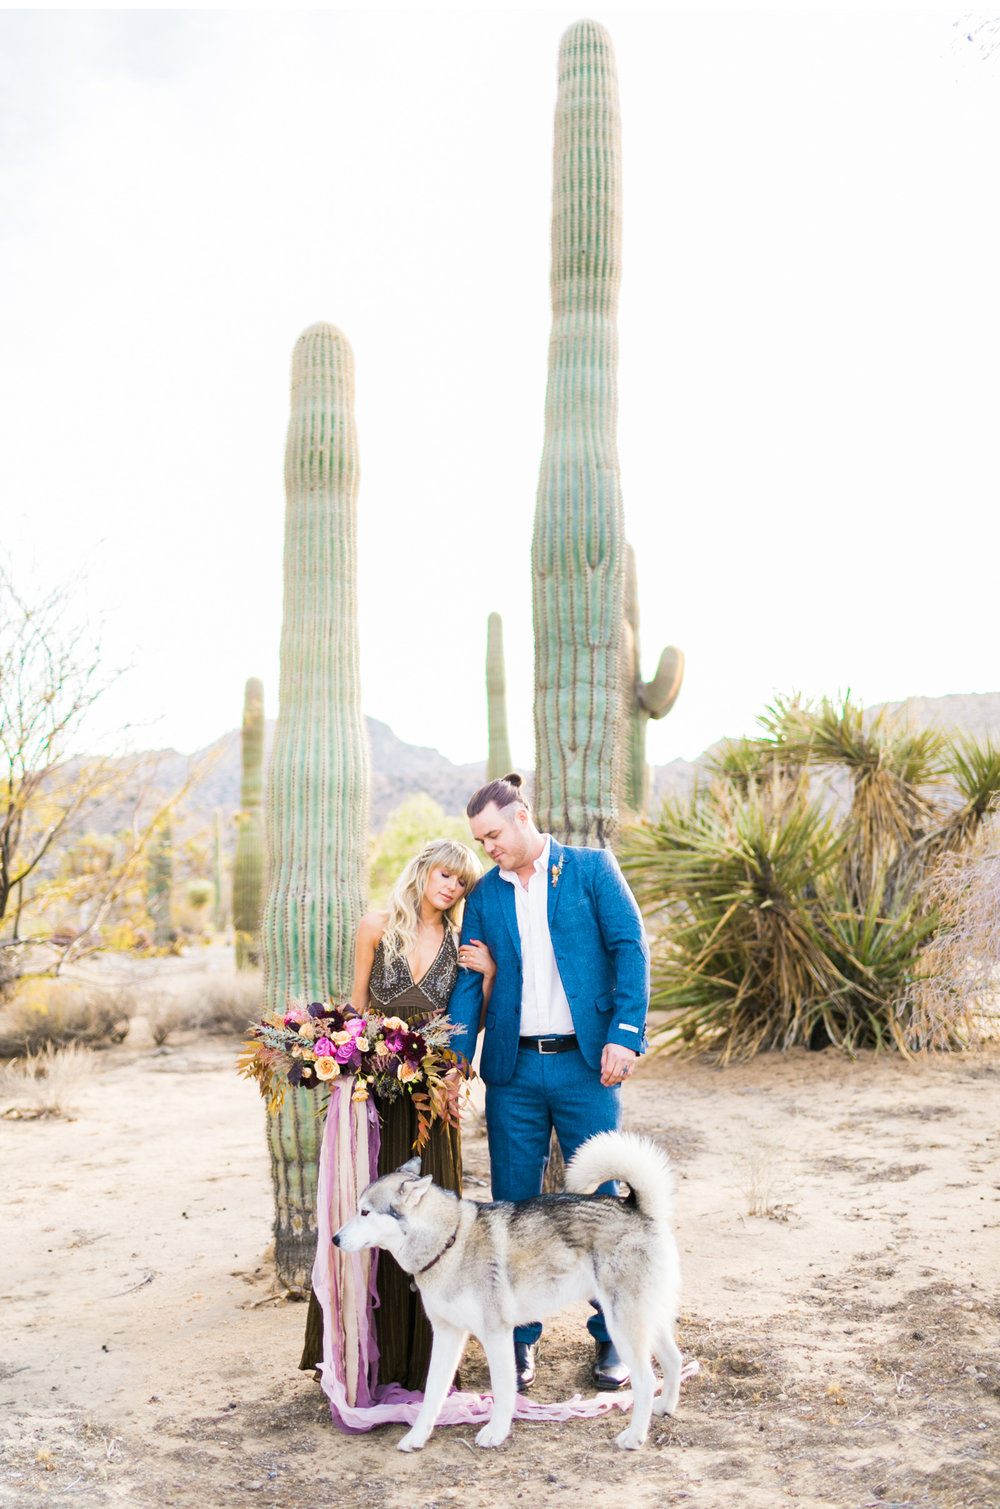 Southern-California-Elopement-Natalie-Schutt-Photography-Joshua-Tree_12.jpg